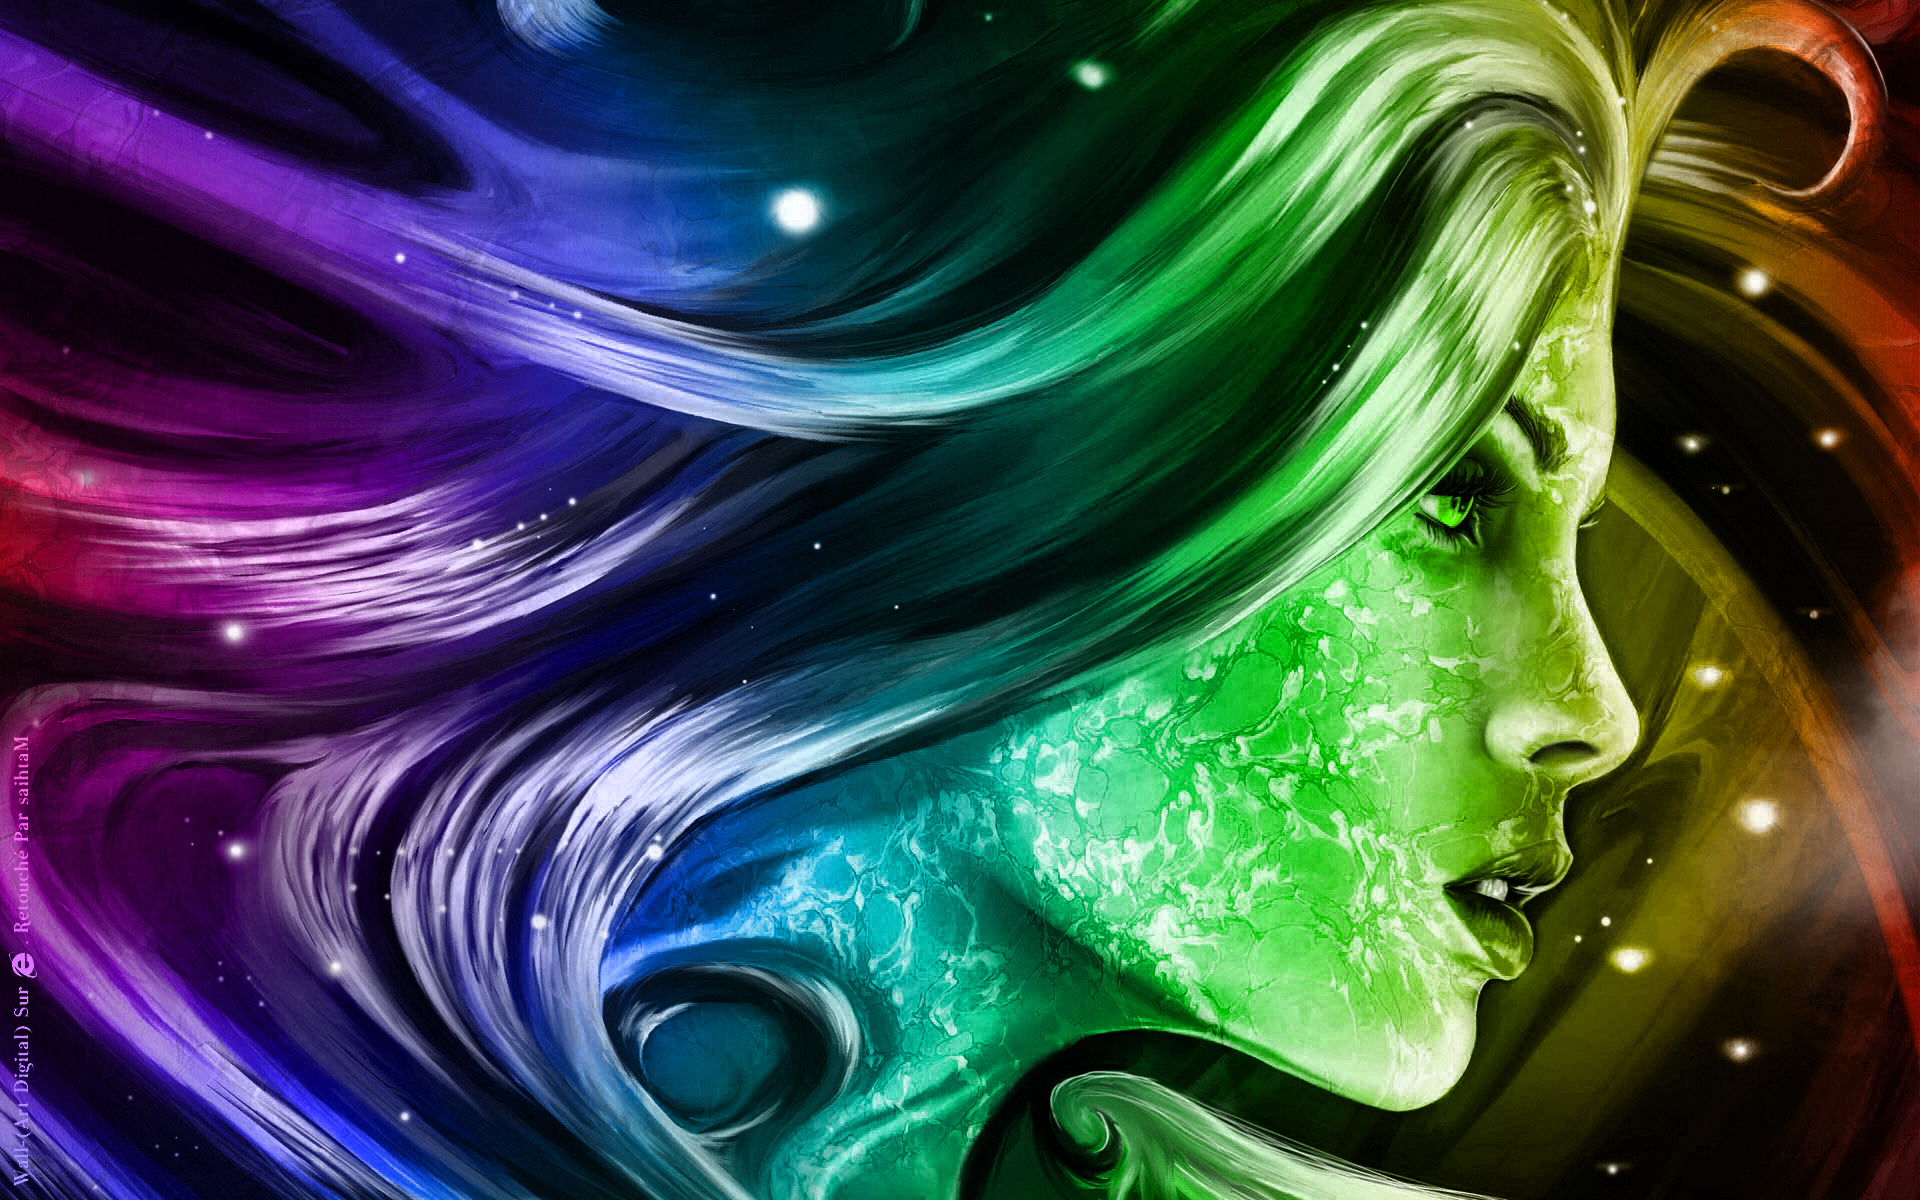 Paint Rainbow Girl Wallpapers: Digital Art Wallpapers